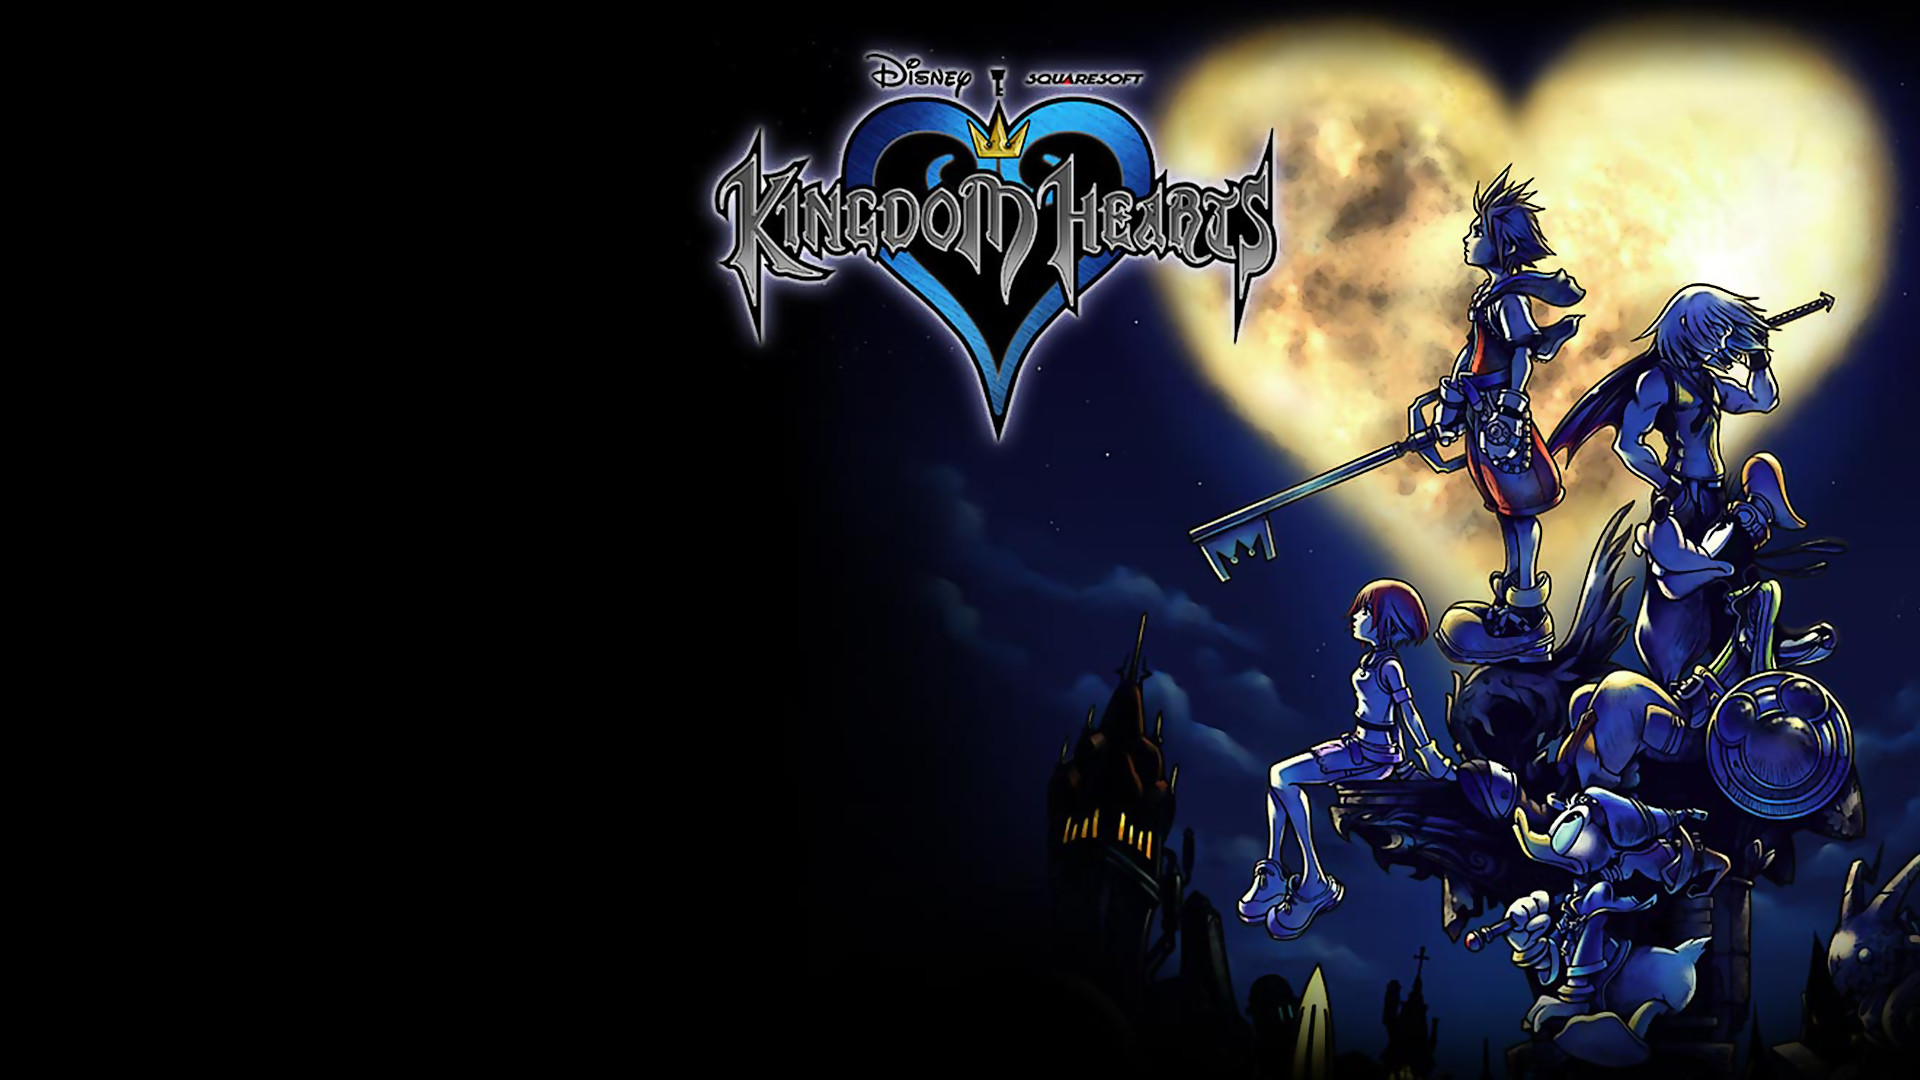 1920x1080 Kingdom Hearts Wallpaper Hd Resolution